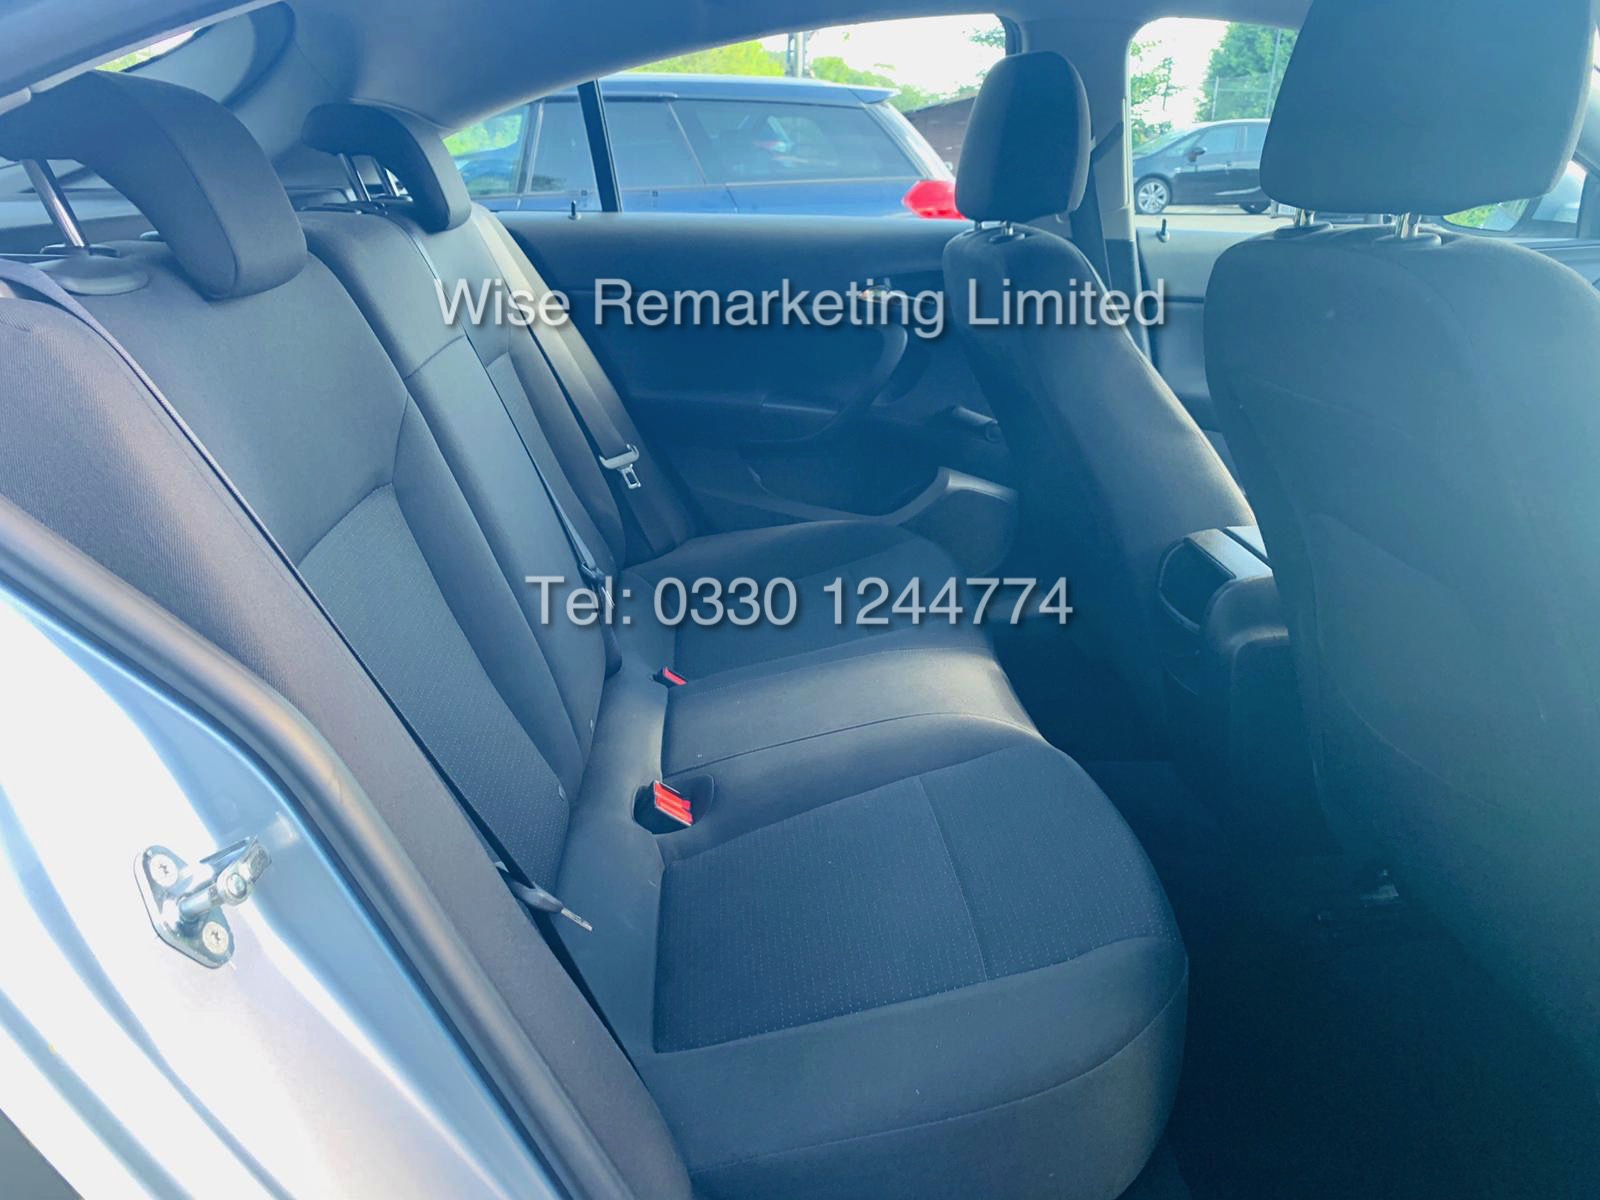 VAUXHALL INSIGNIA 2.0 CDTI ECOFLEX ES 2013 *FSH* 1 OWNER FROM NEW - Image 13 of 30